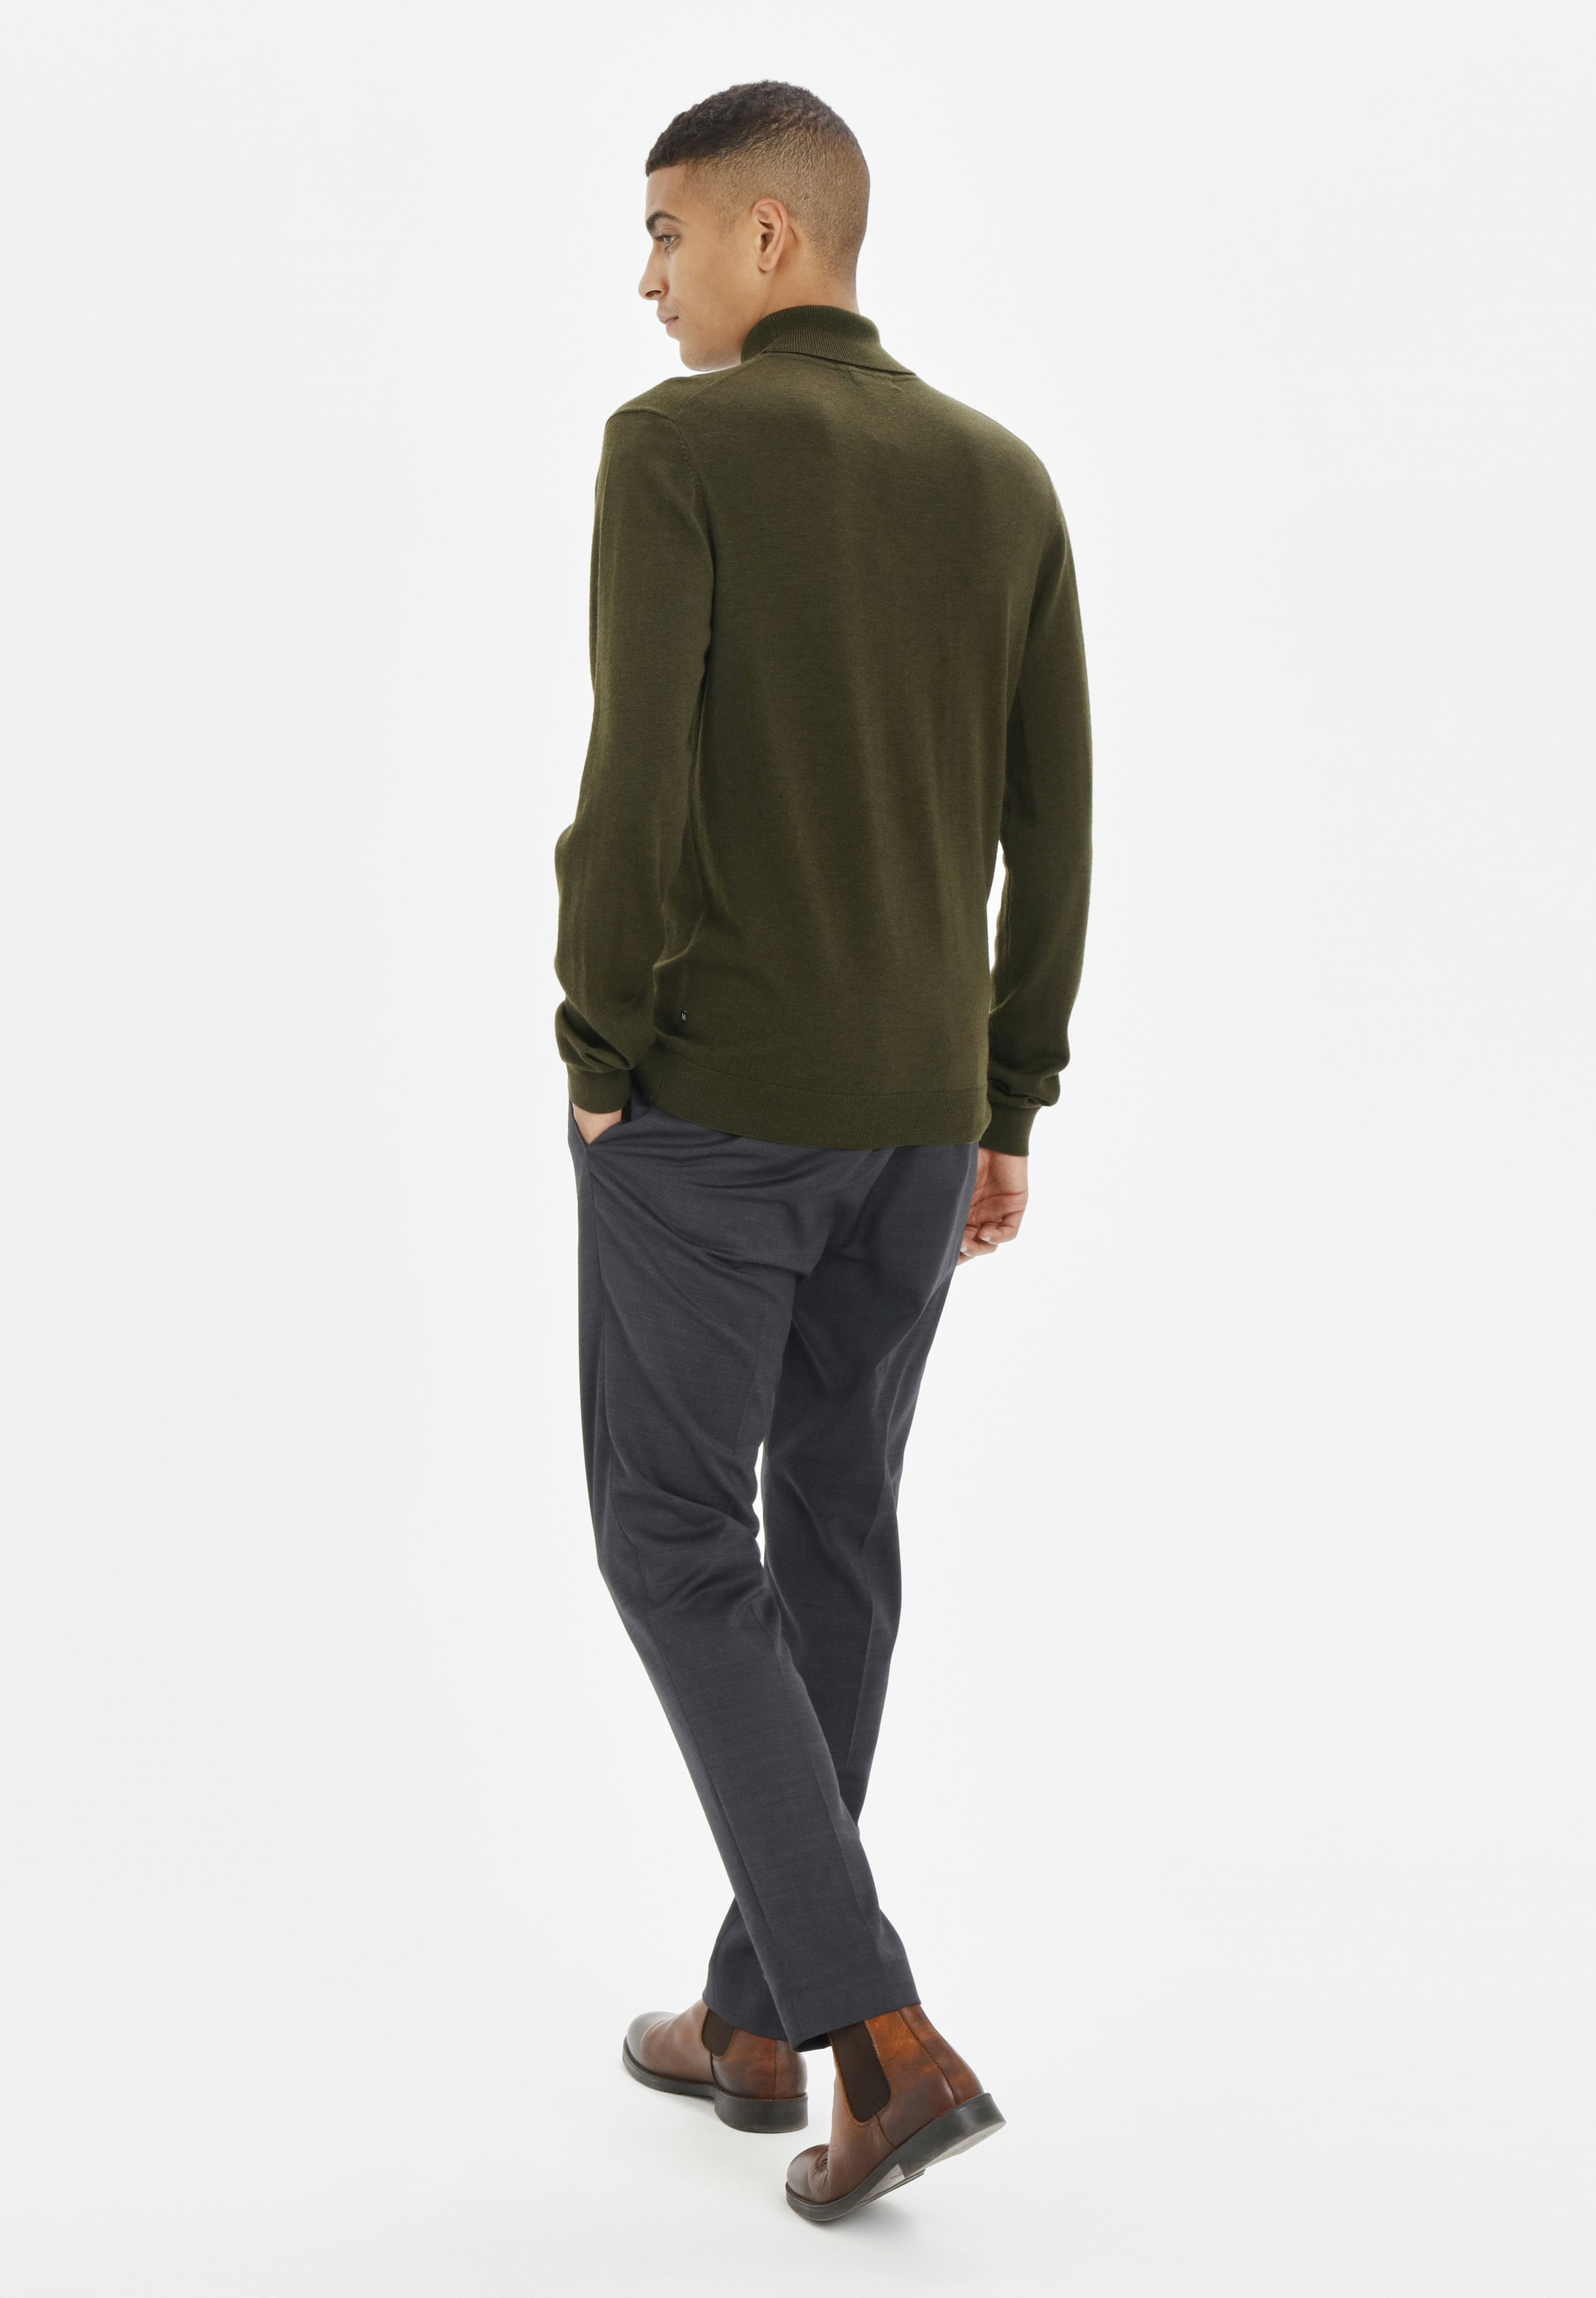 Matinique Pullover - moss green